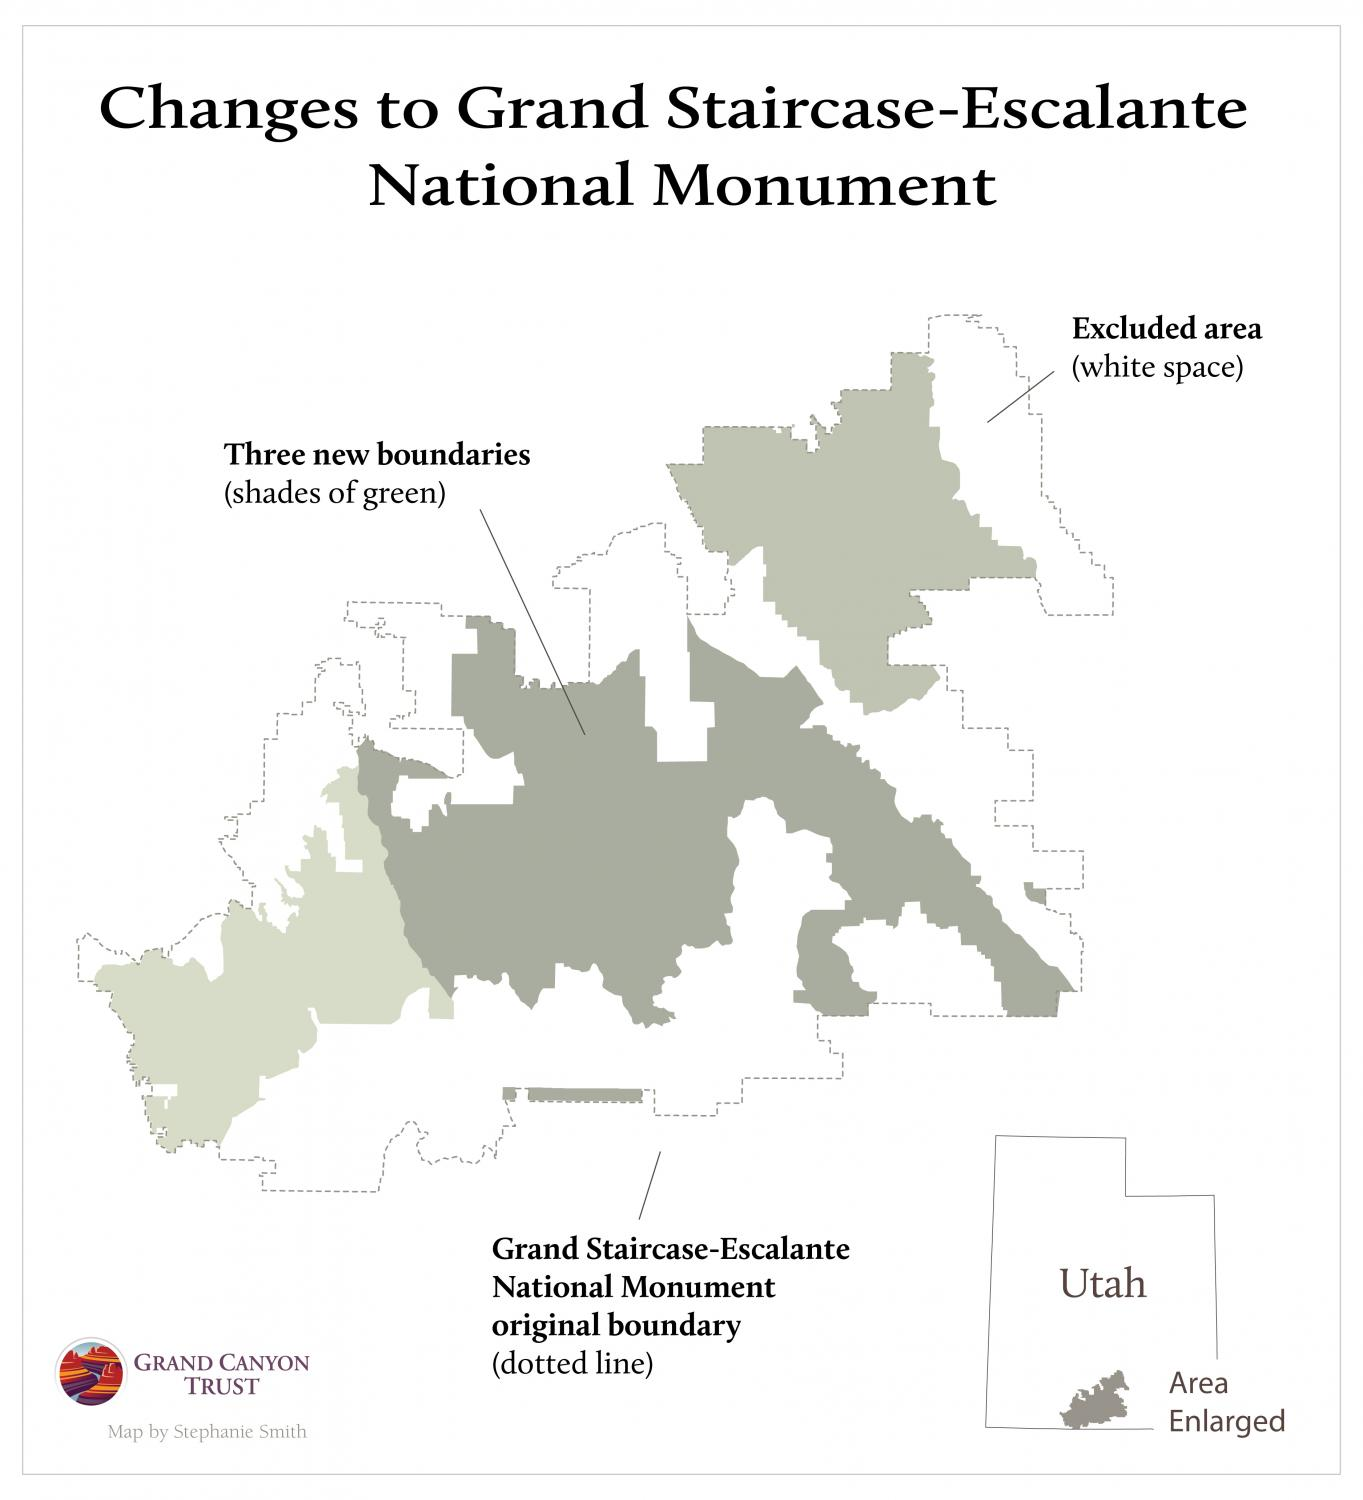 Map showing the excluded areas from Grand Staircase-Escalante National Monument.